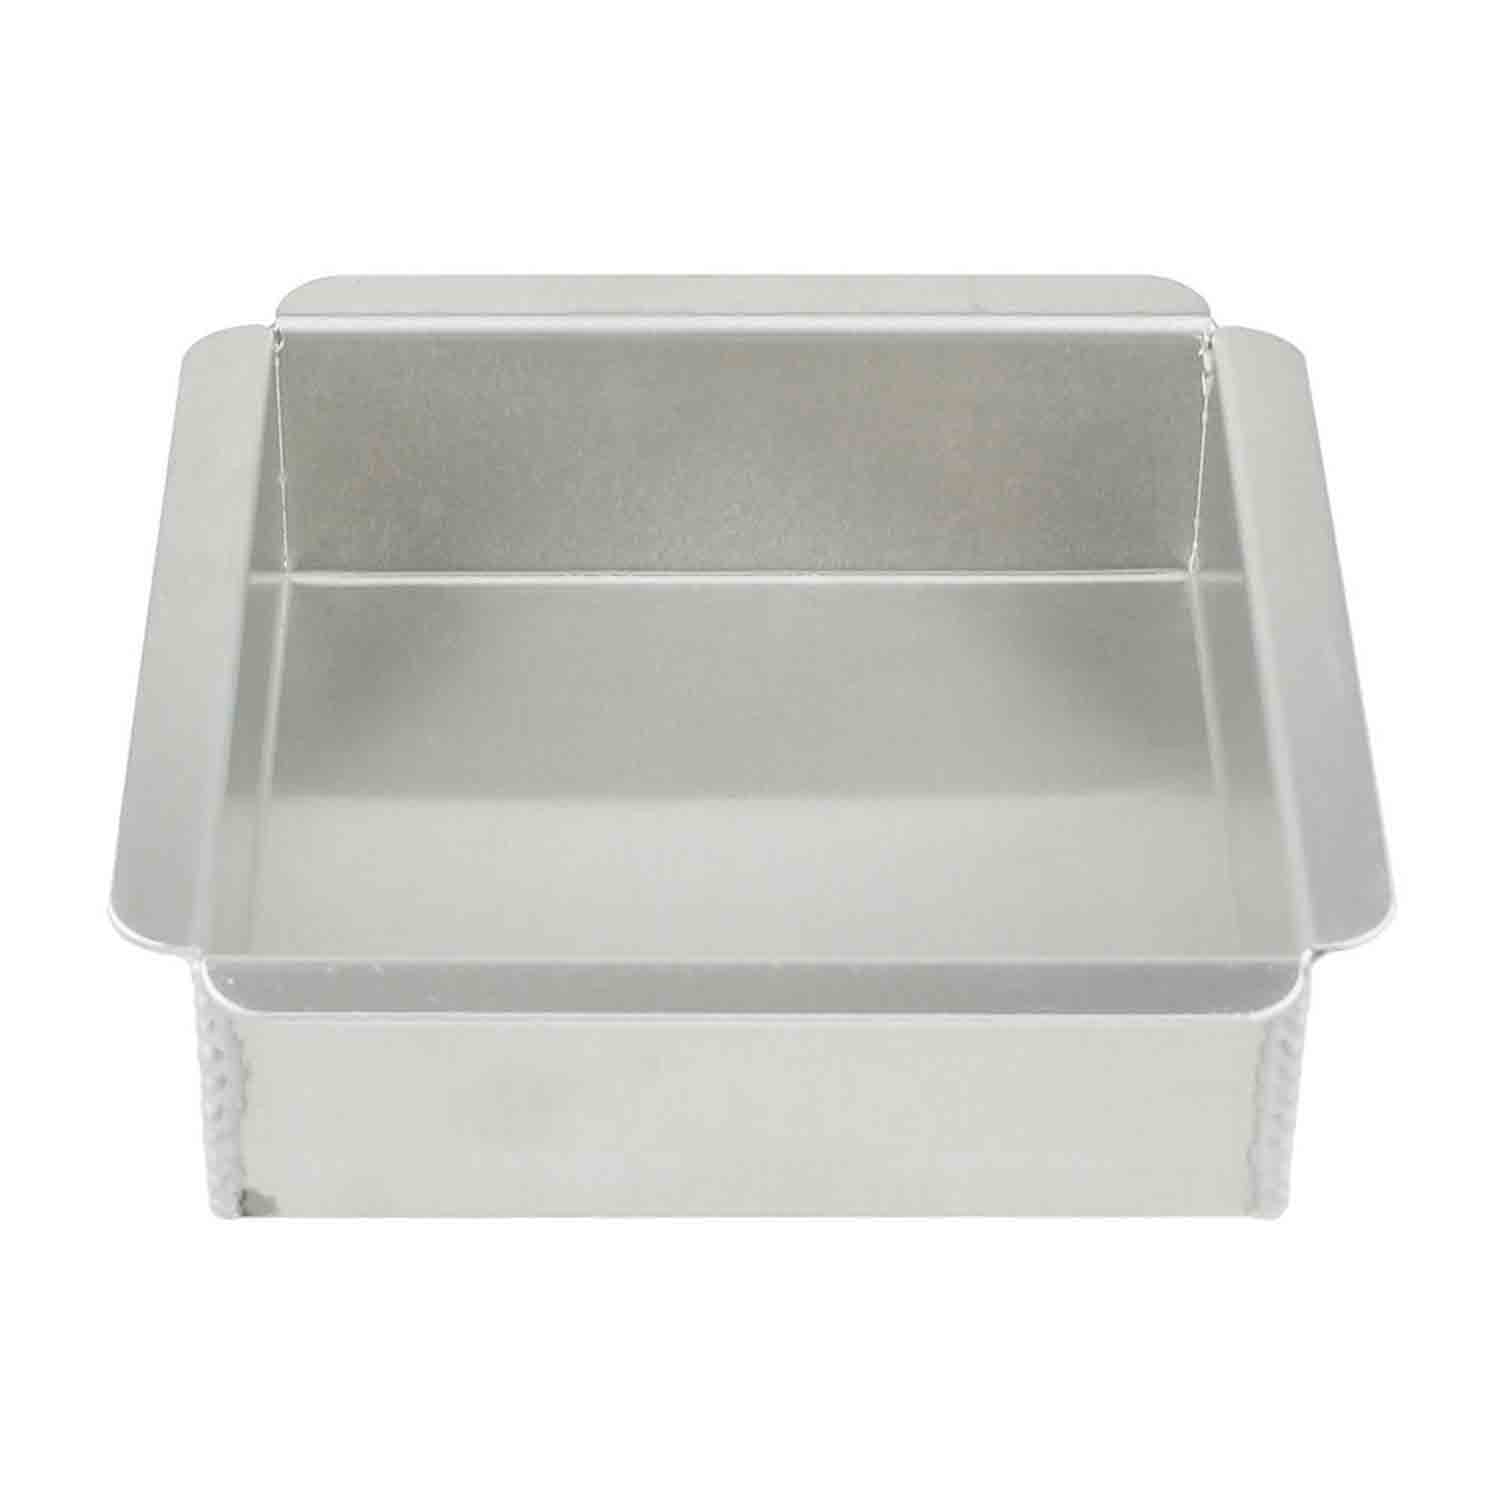 "6 x 2"" Magic Line Square Cake Pan"